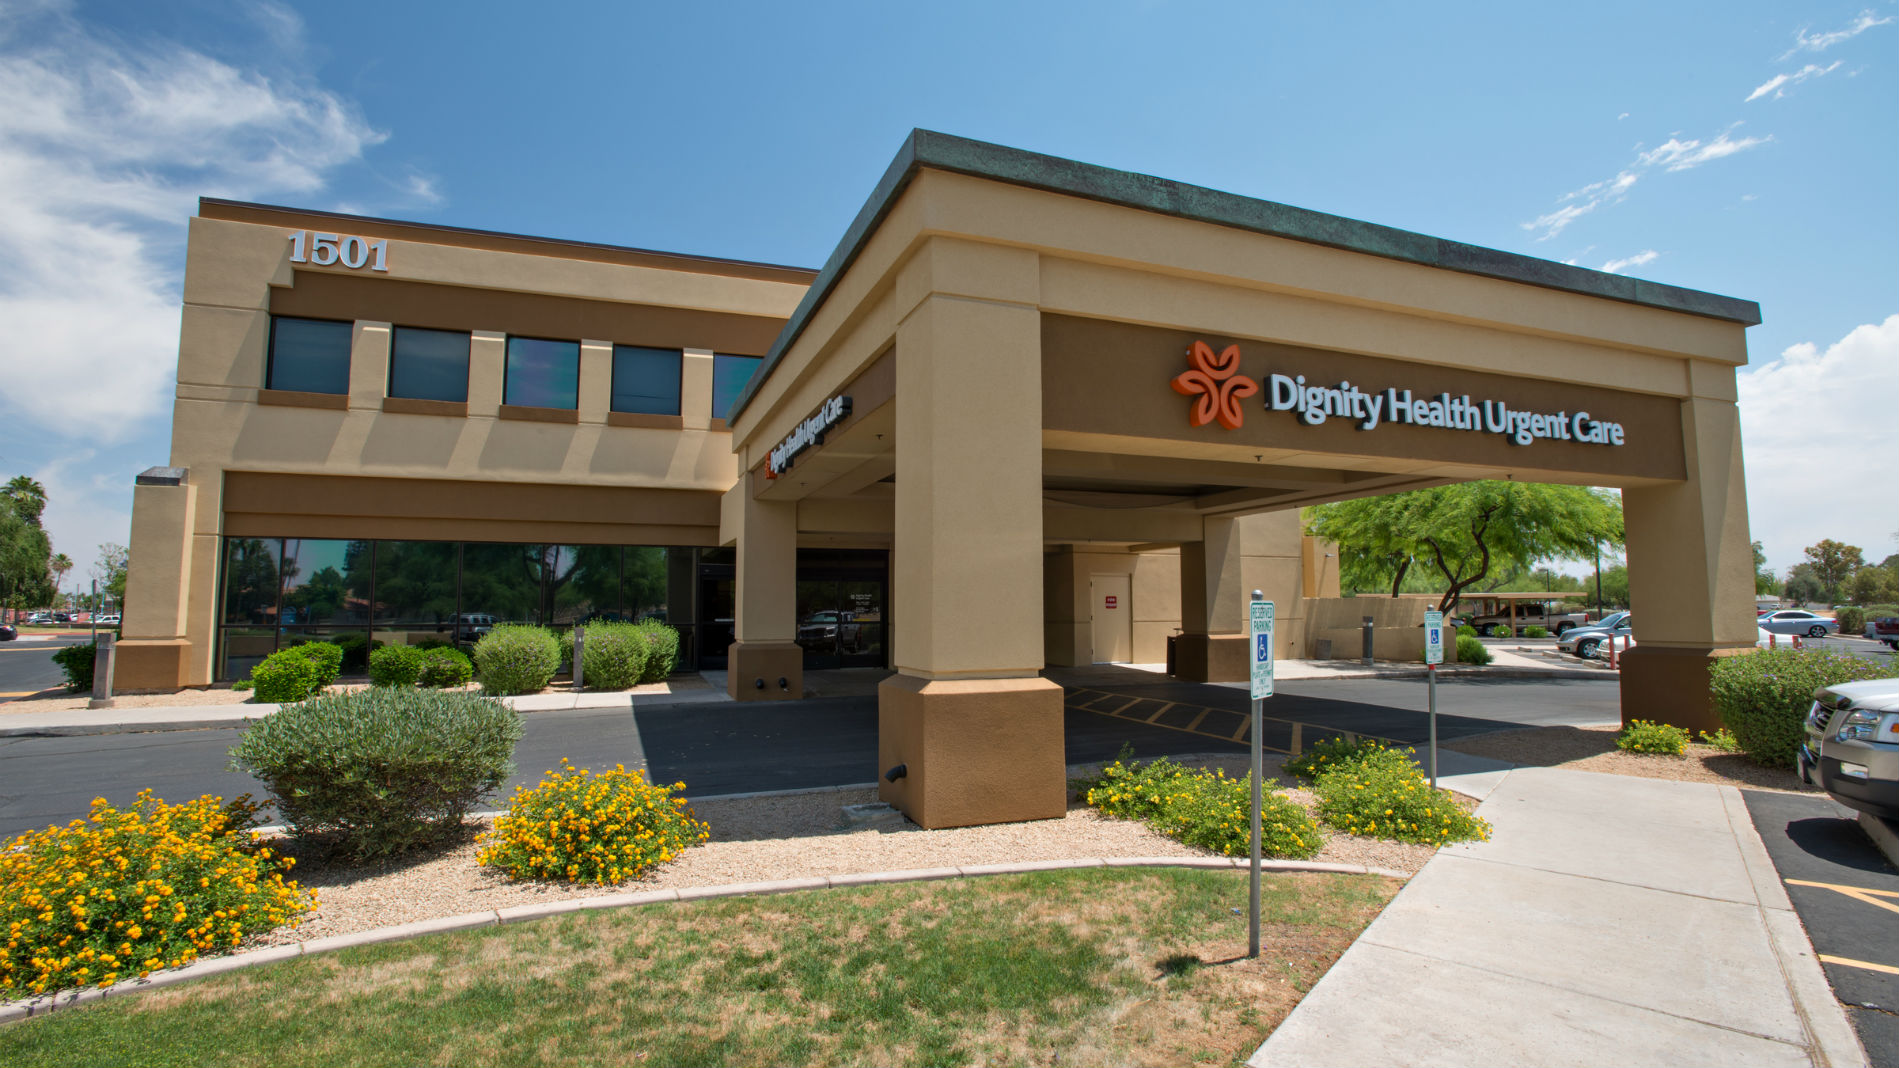 Dignity Health Urgent Care in Gilbert